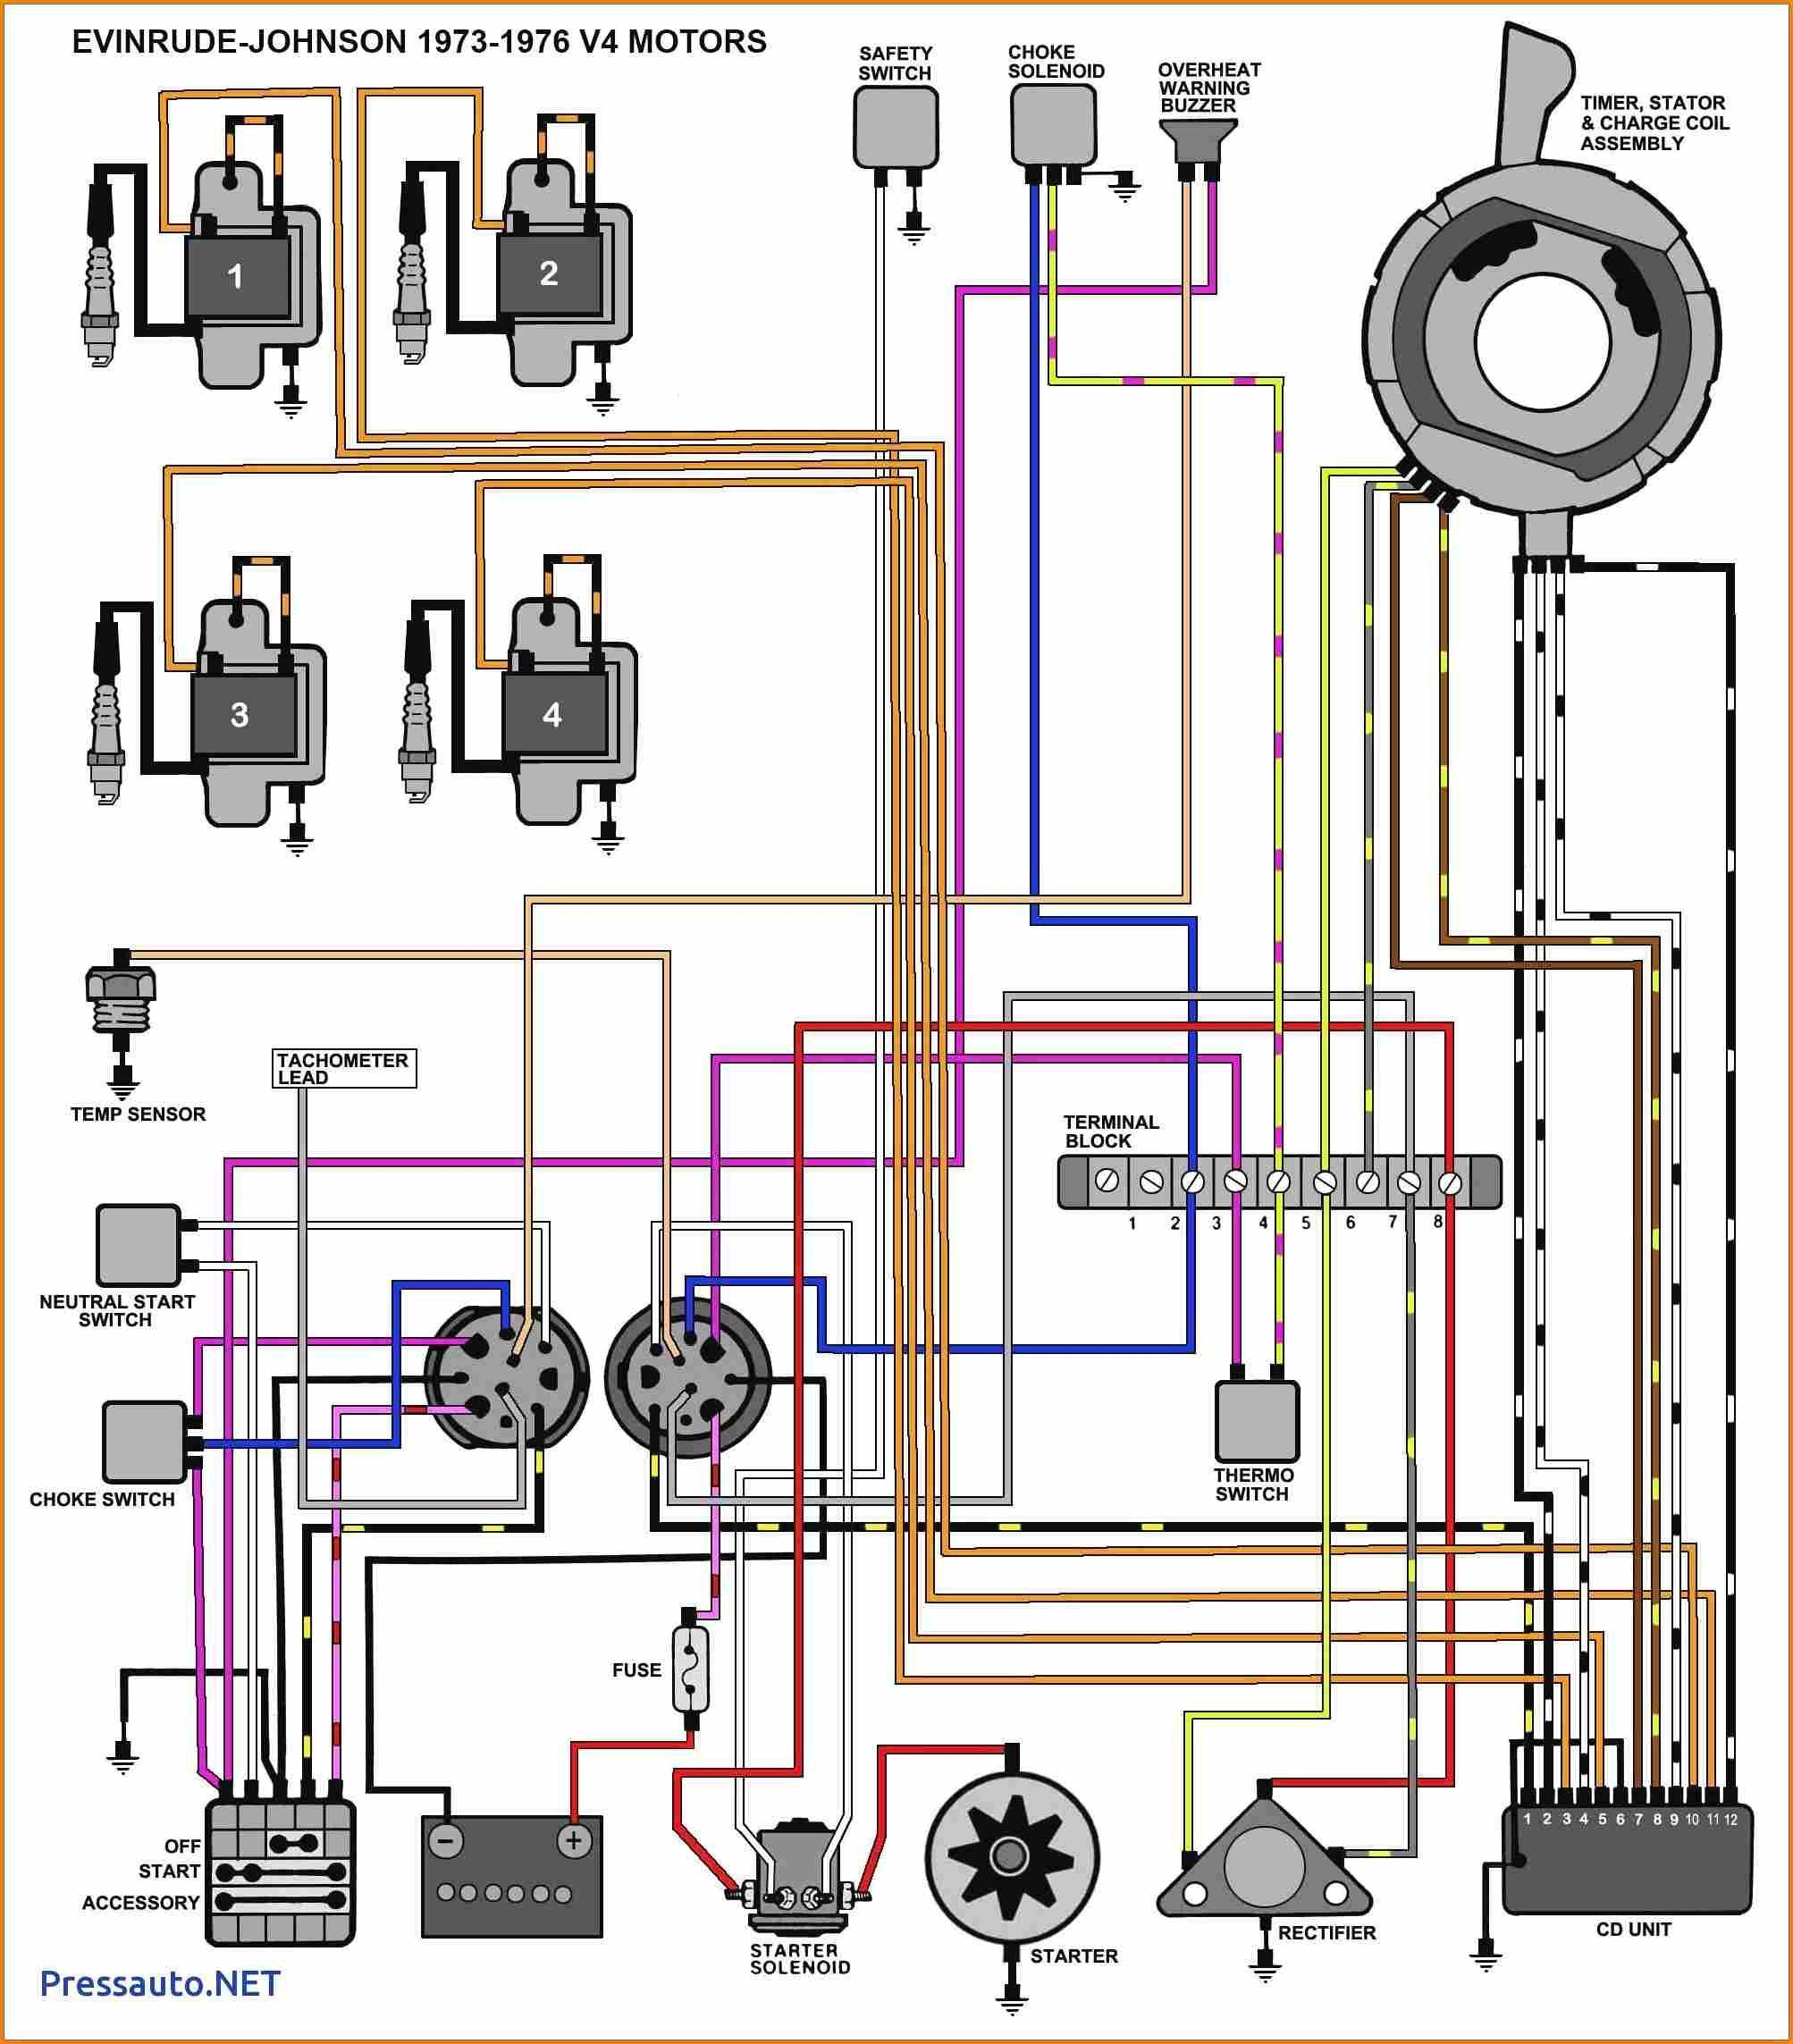 S Electric Omc Wiring Diagram 1972 | Wiring Diagram - Johnson Outboard Ignition Switch Wiring Diagram